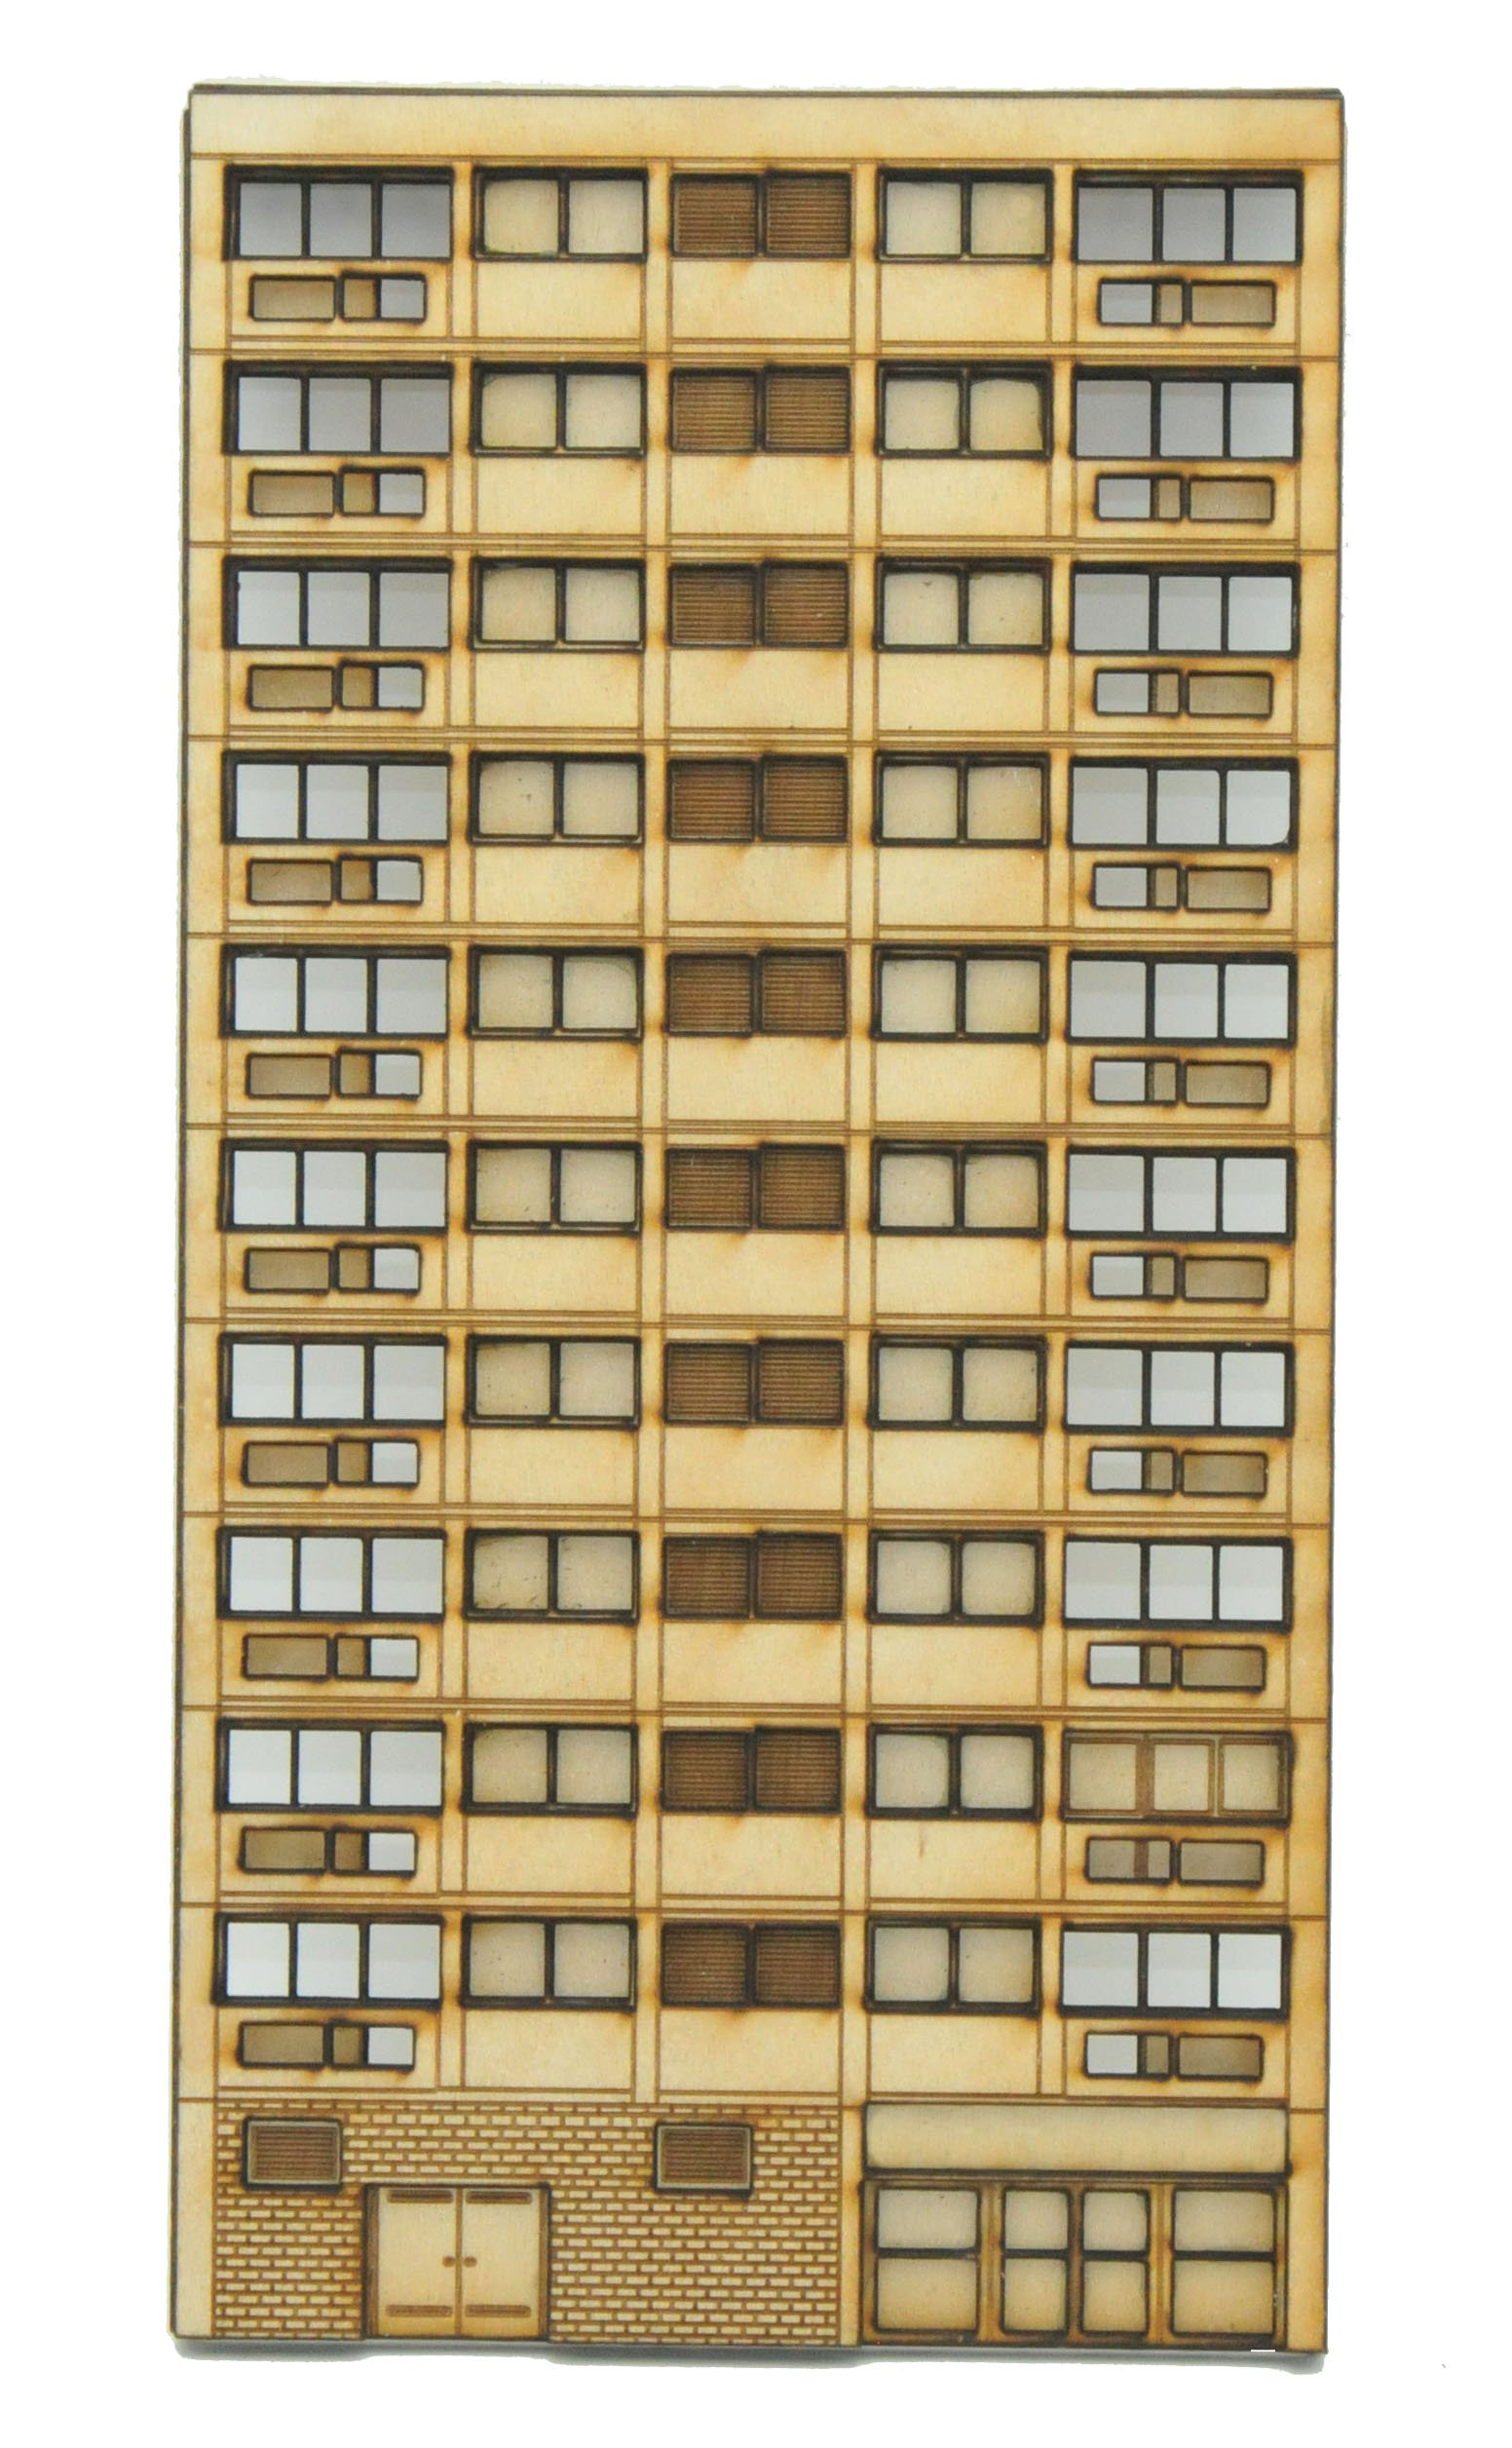 N-FL002 Right Hand Low Relief Block of Flats N Gauge Laser Cut Kit